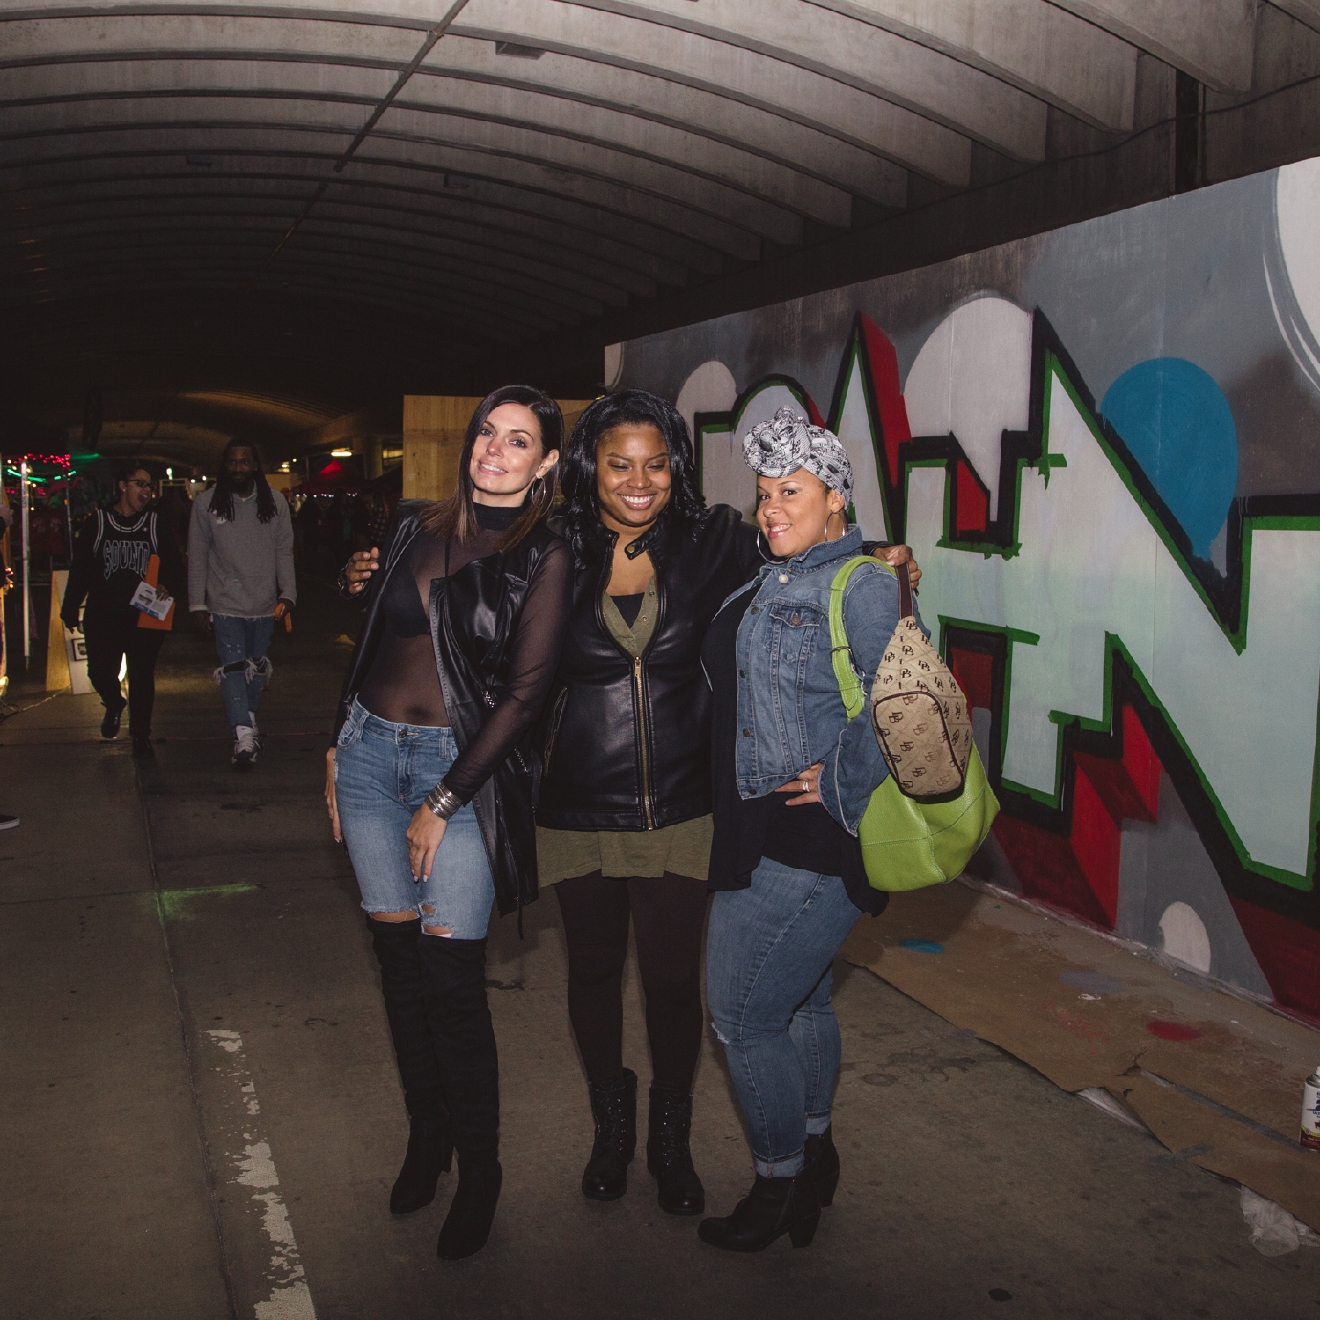 Allyson B, Michelle Walker and Crystal W. / Image: Catherine Viox / Published: 10.21.16